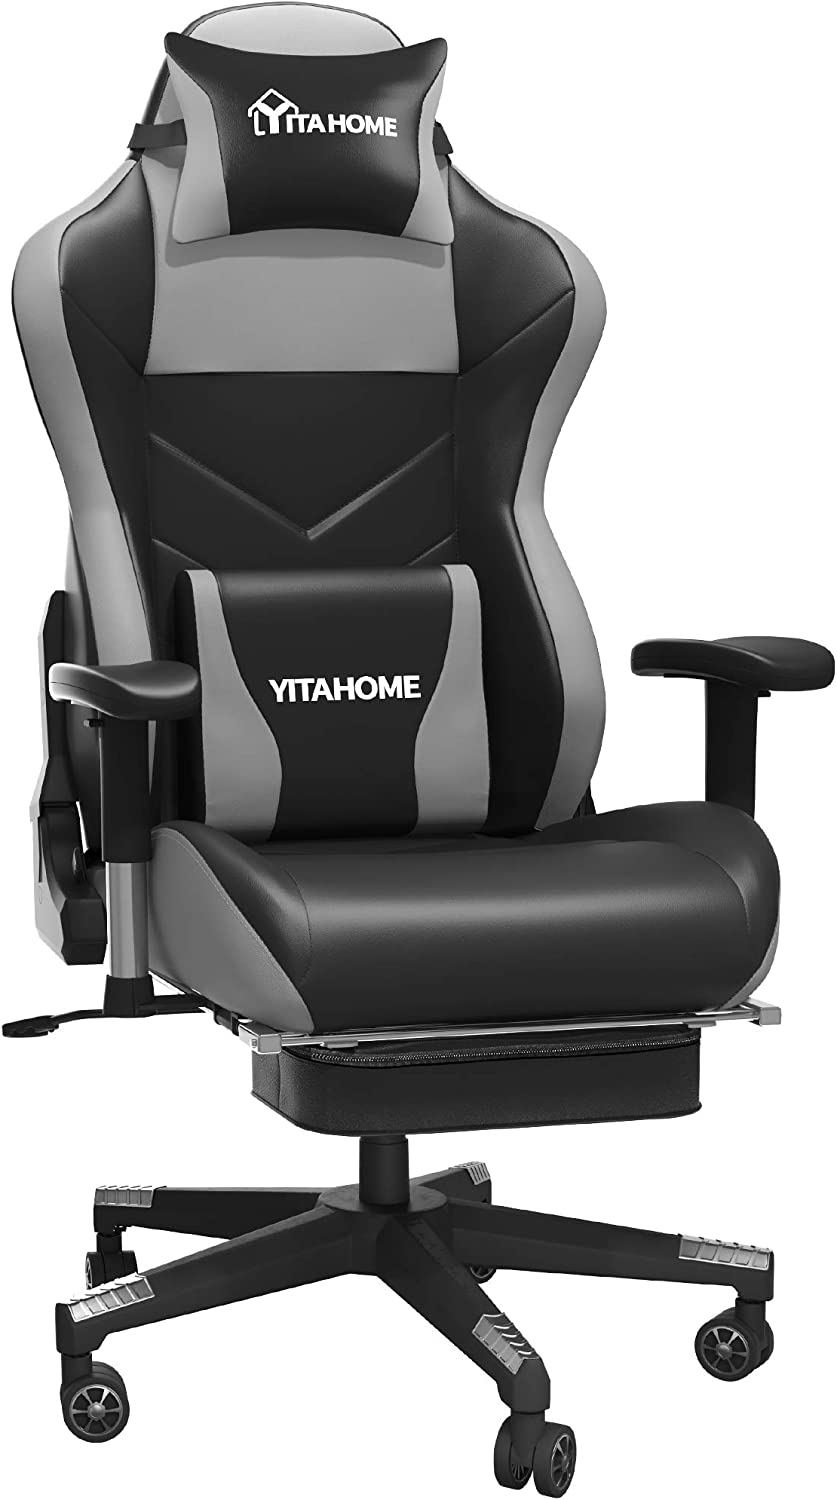 YITAHOME Massage Gaming Chair with Wholesale Big and Popular product Tall Footrest 380lbs